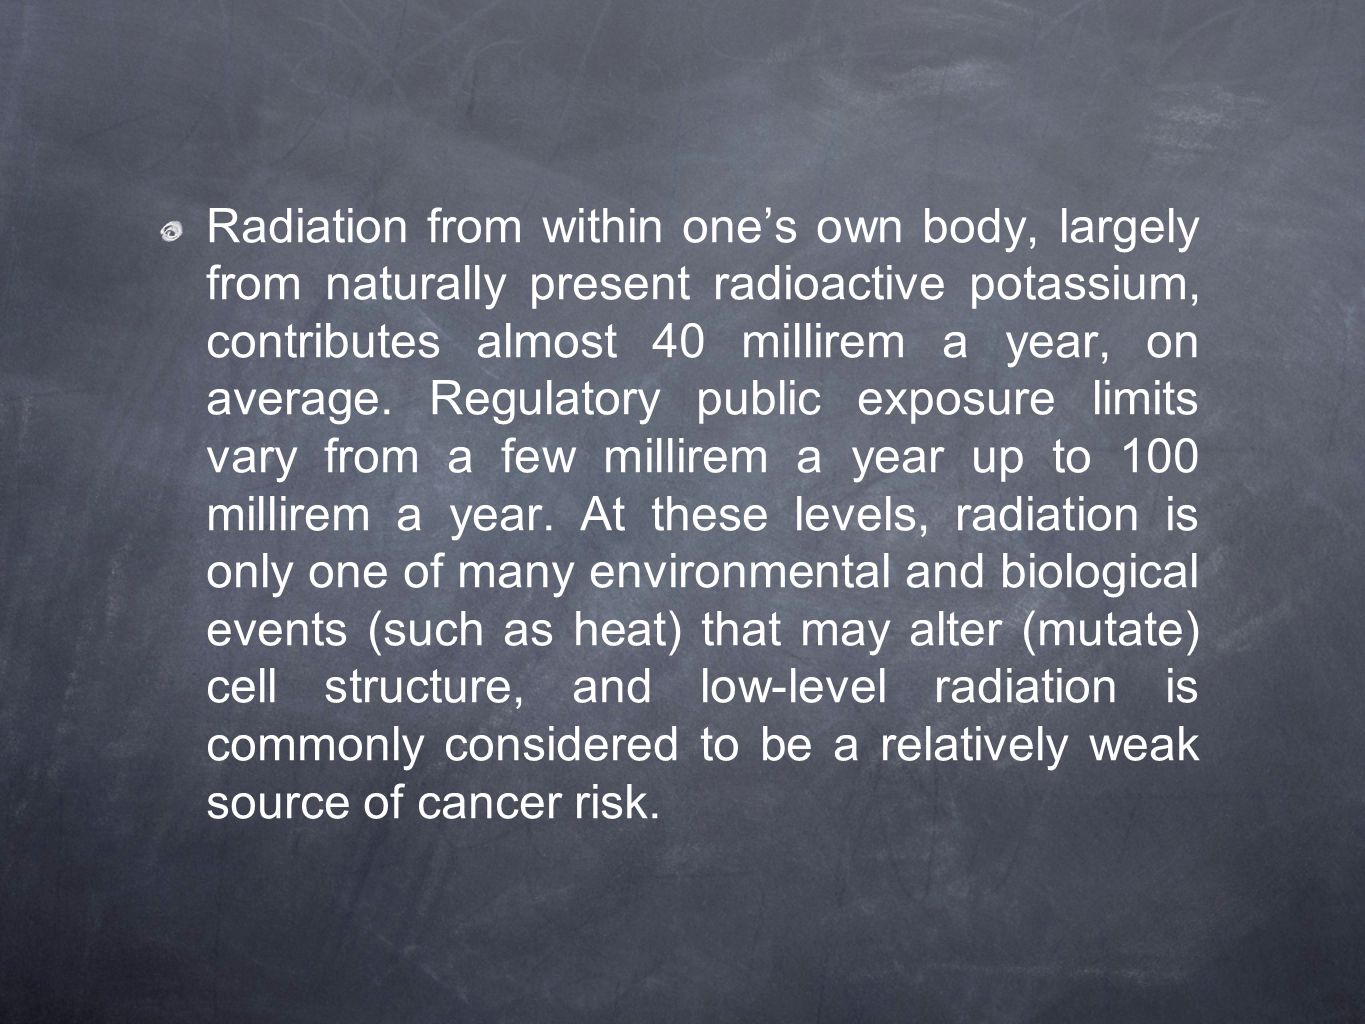 Radiation from within one's own body, largely from naturally present radioactive potassium, contributes almost 40 millirem a year, on average.